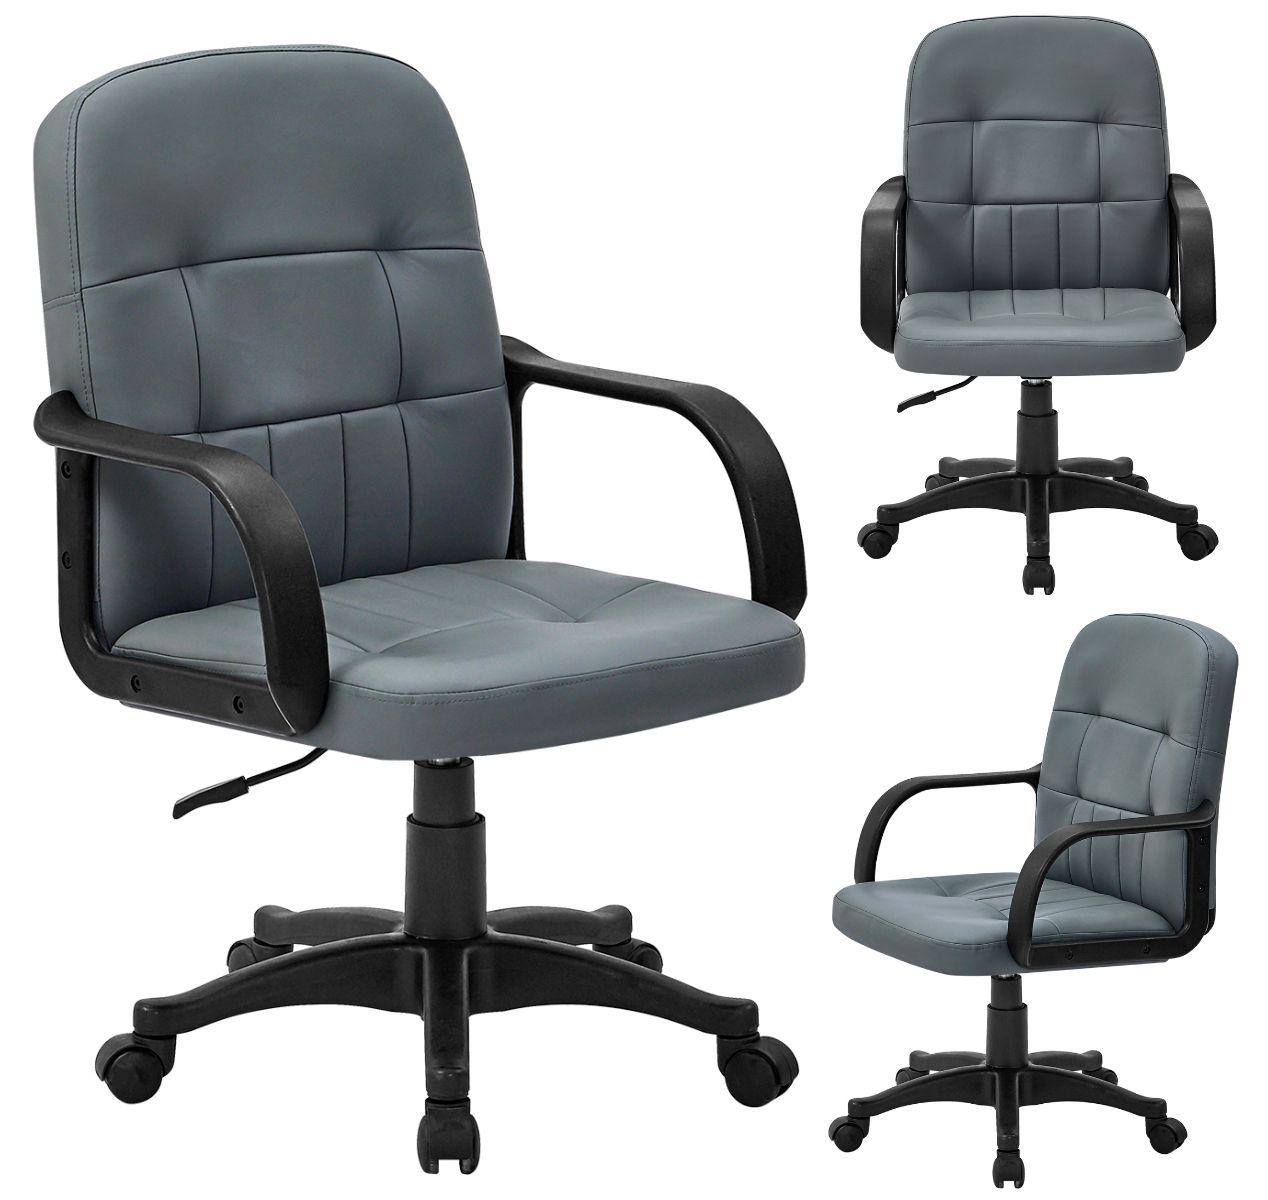 Details about Grey/Black Desk Chair Swivel Padded PU